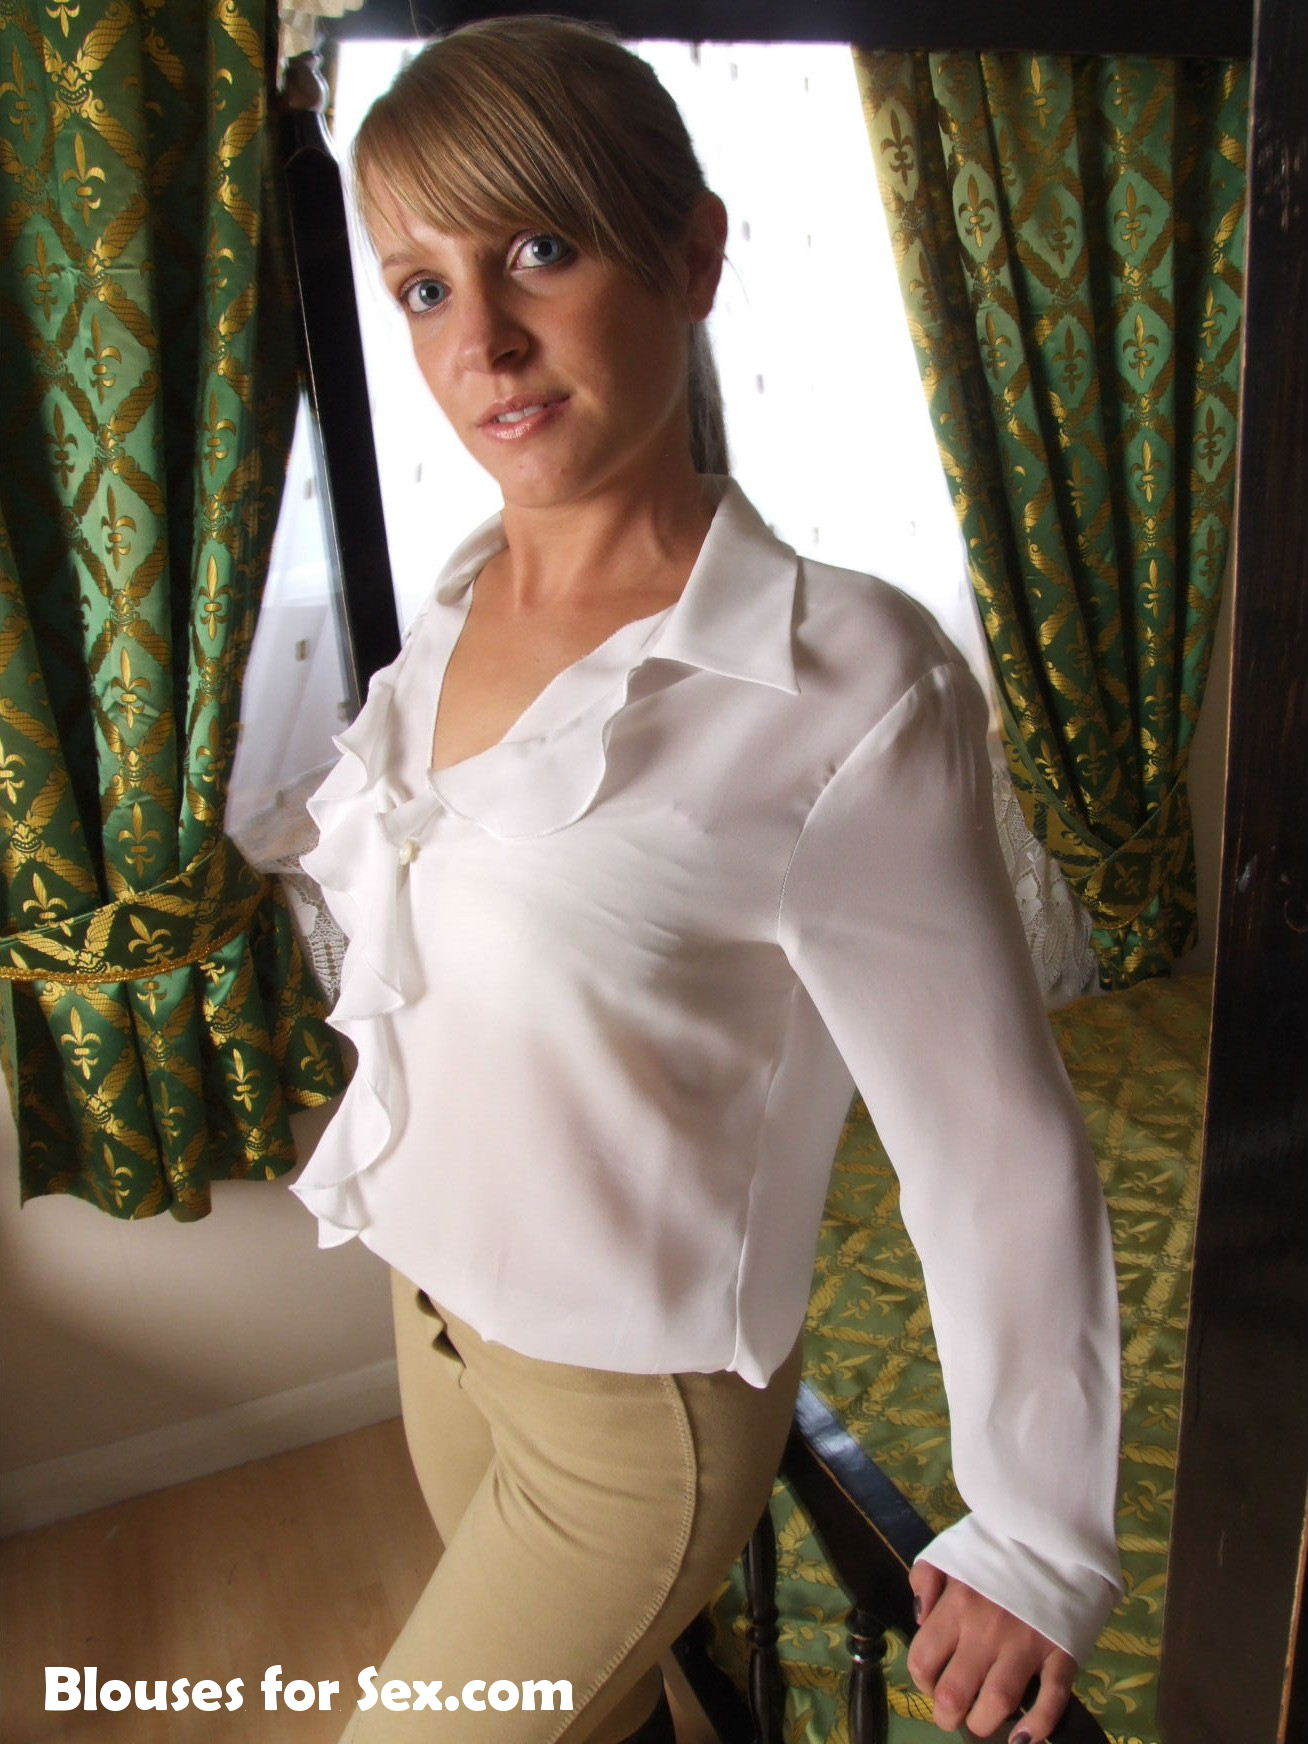 Blouse Focus: Frills and Ruffles